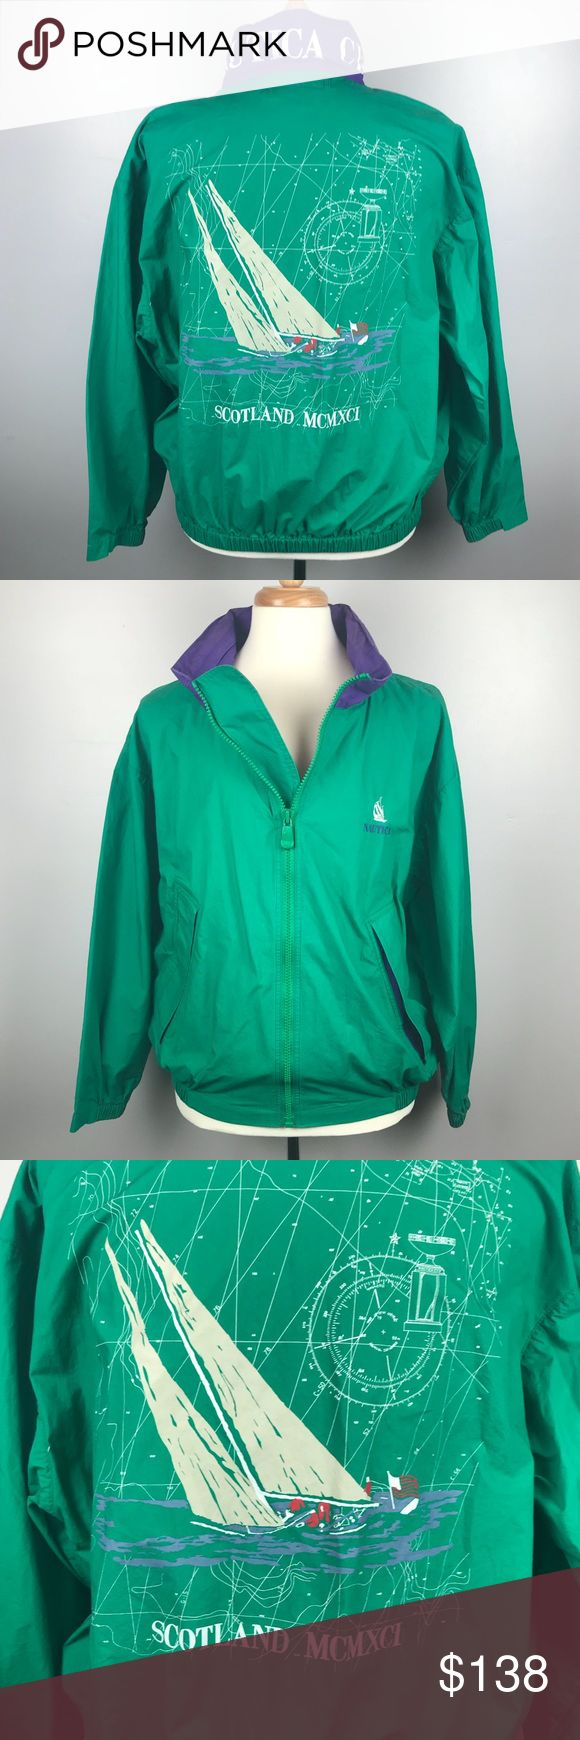 """Men's VTG Nautica Scotland Cup 1991 Sailing Jacket Vintage 1991 Nautica Scotland Cup Sailing Jacket Green with Purple Accent Color Front Zipper Hidden Purple Hood Zippers into Collar Back of Collar says """"Nautica Cup"""" Back has map and sailboat  A few pulls on inside lining otherwise excellent condition Men's Size Large 27.5"""" underarm to underarm measured flat  28"""" long Nautica Jackets & Coats Windbreakers"""